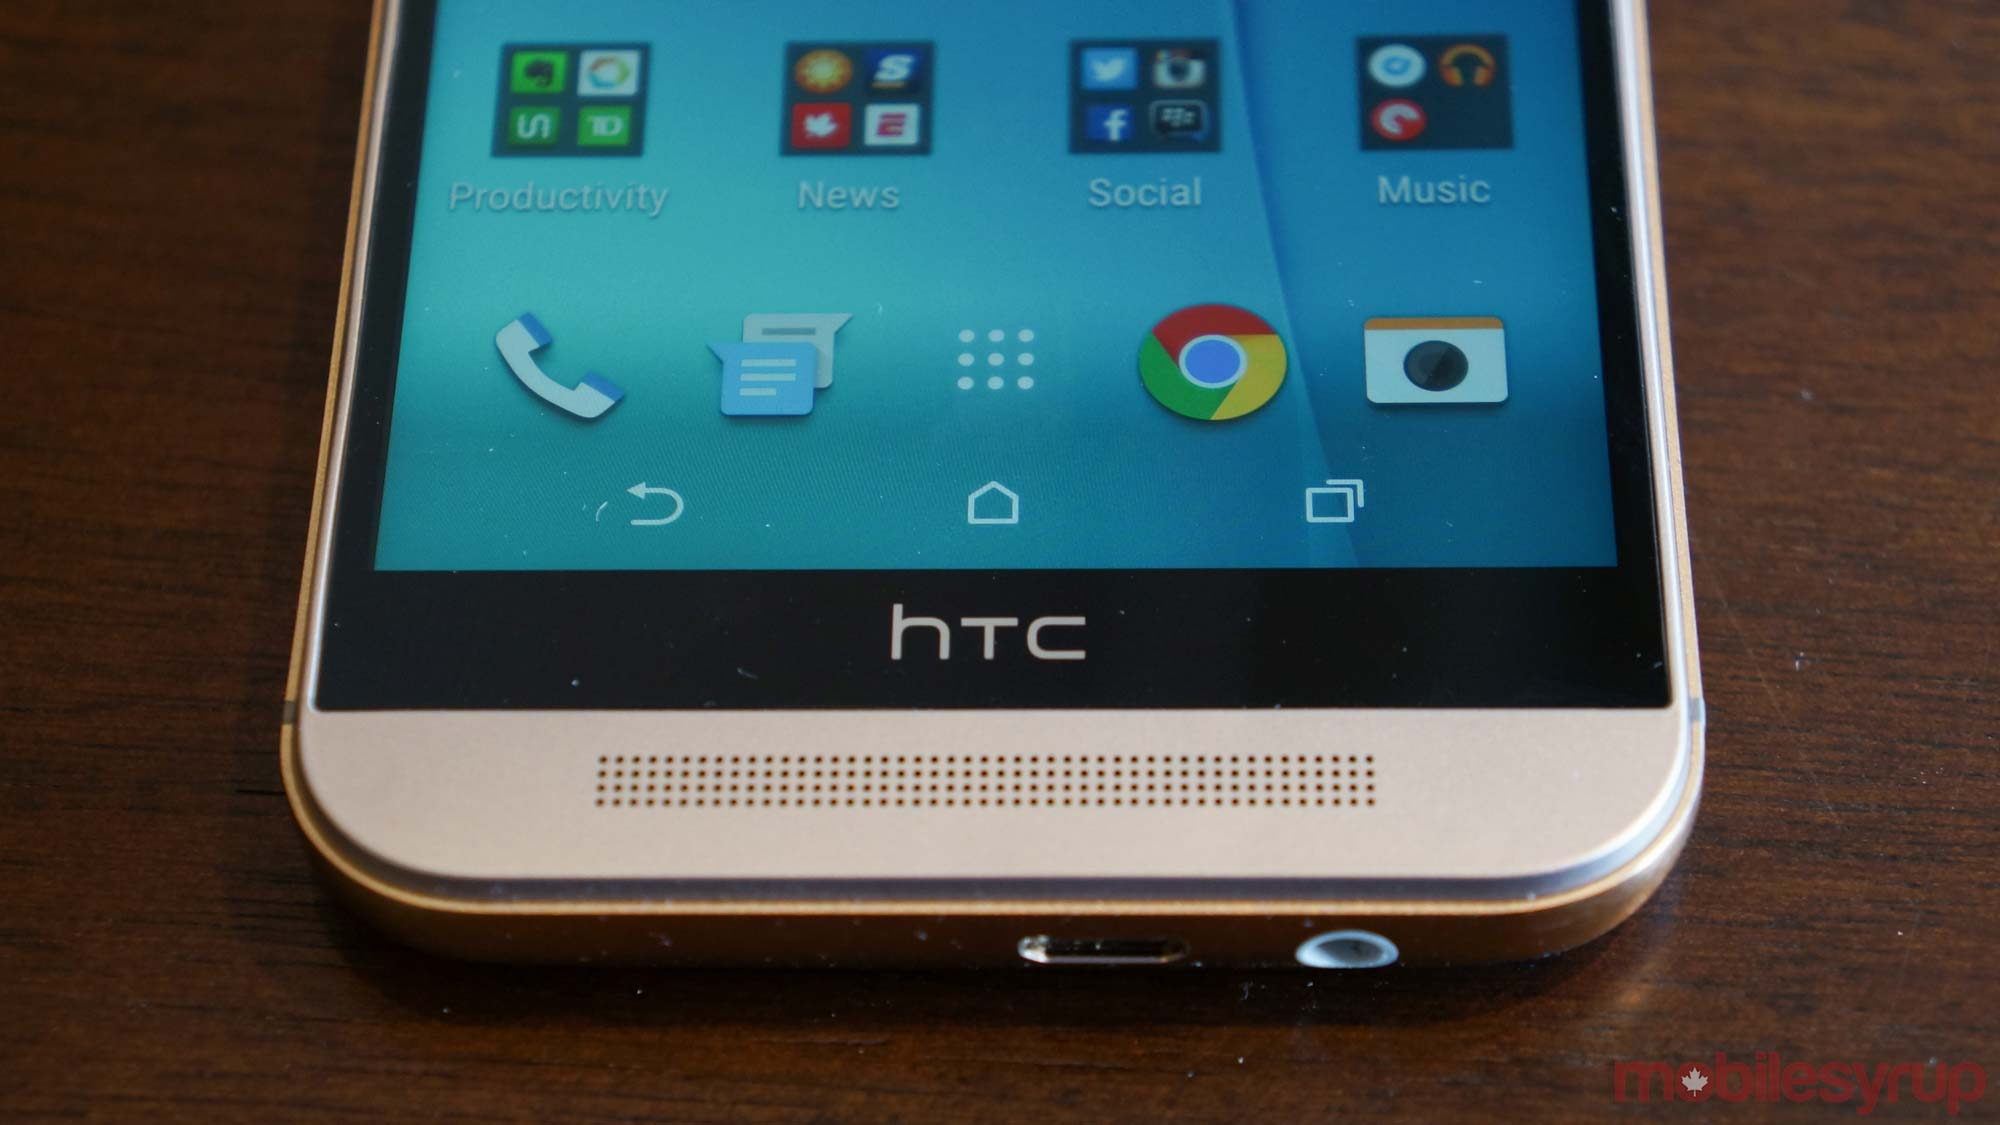 HTC One m9 front bottom of phone - htc one m9 gets android nougat